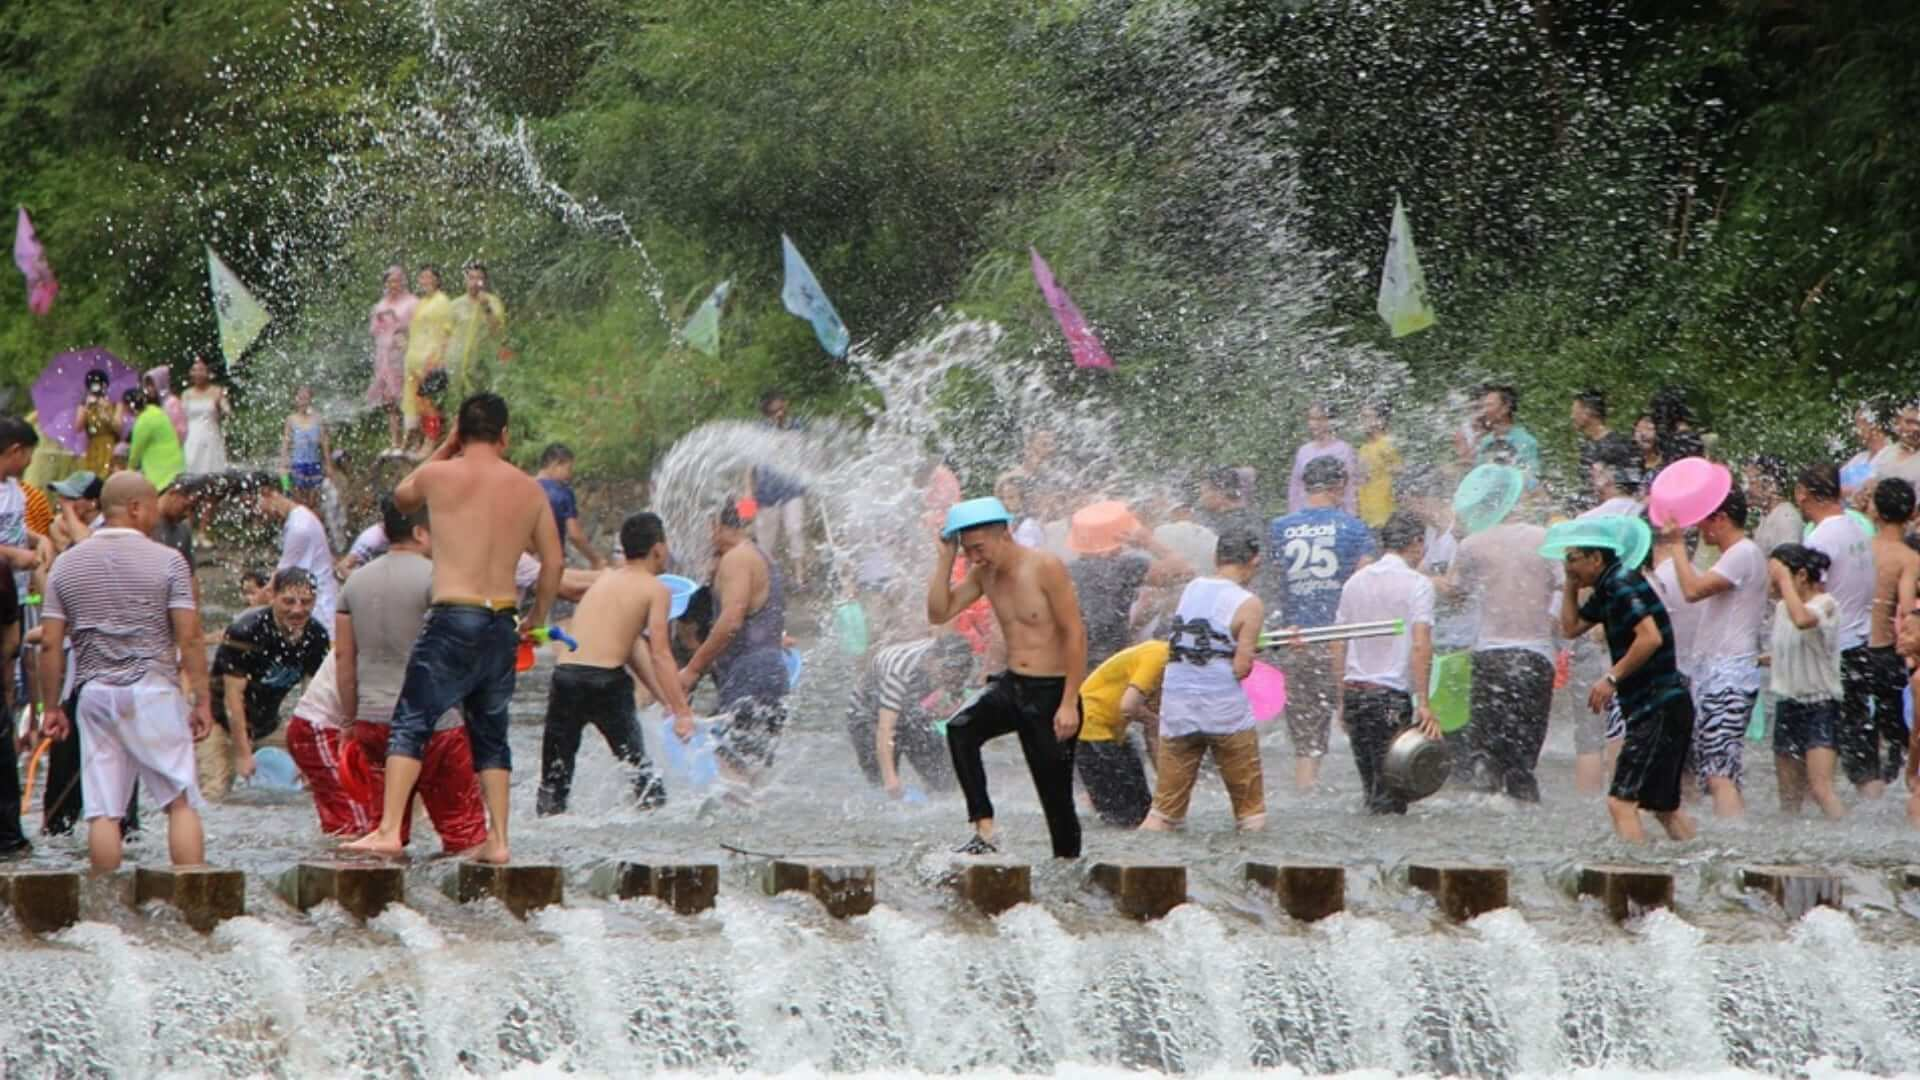 A lot of Thai people are participating in a water fight during a festival in Thailand.